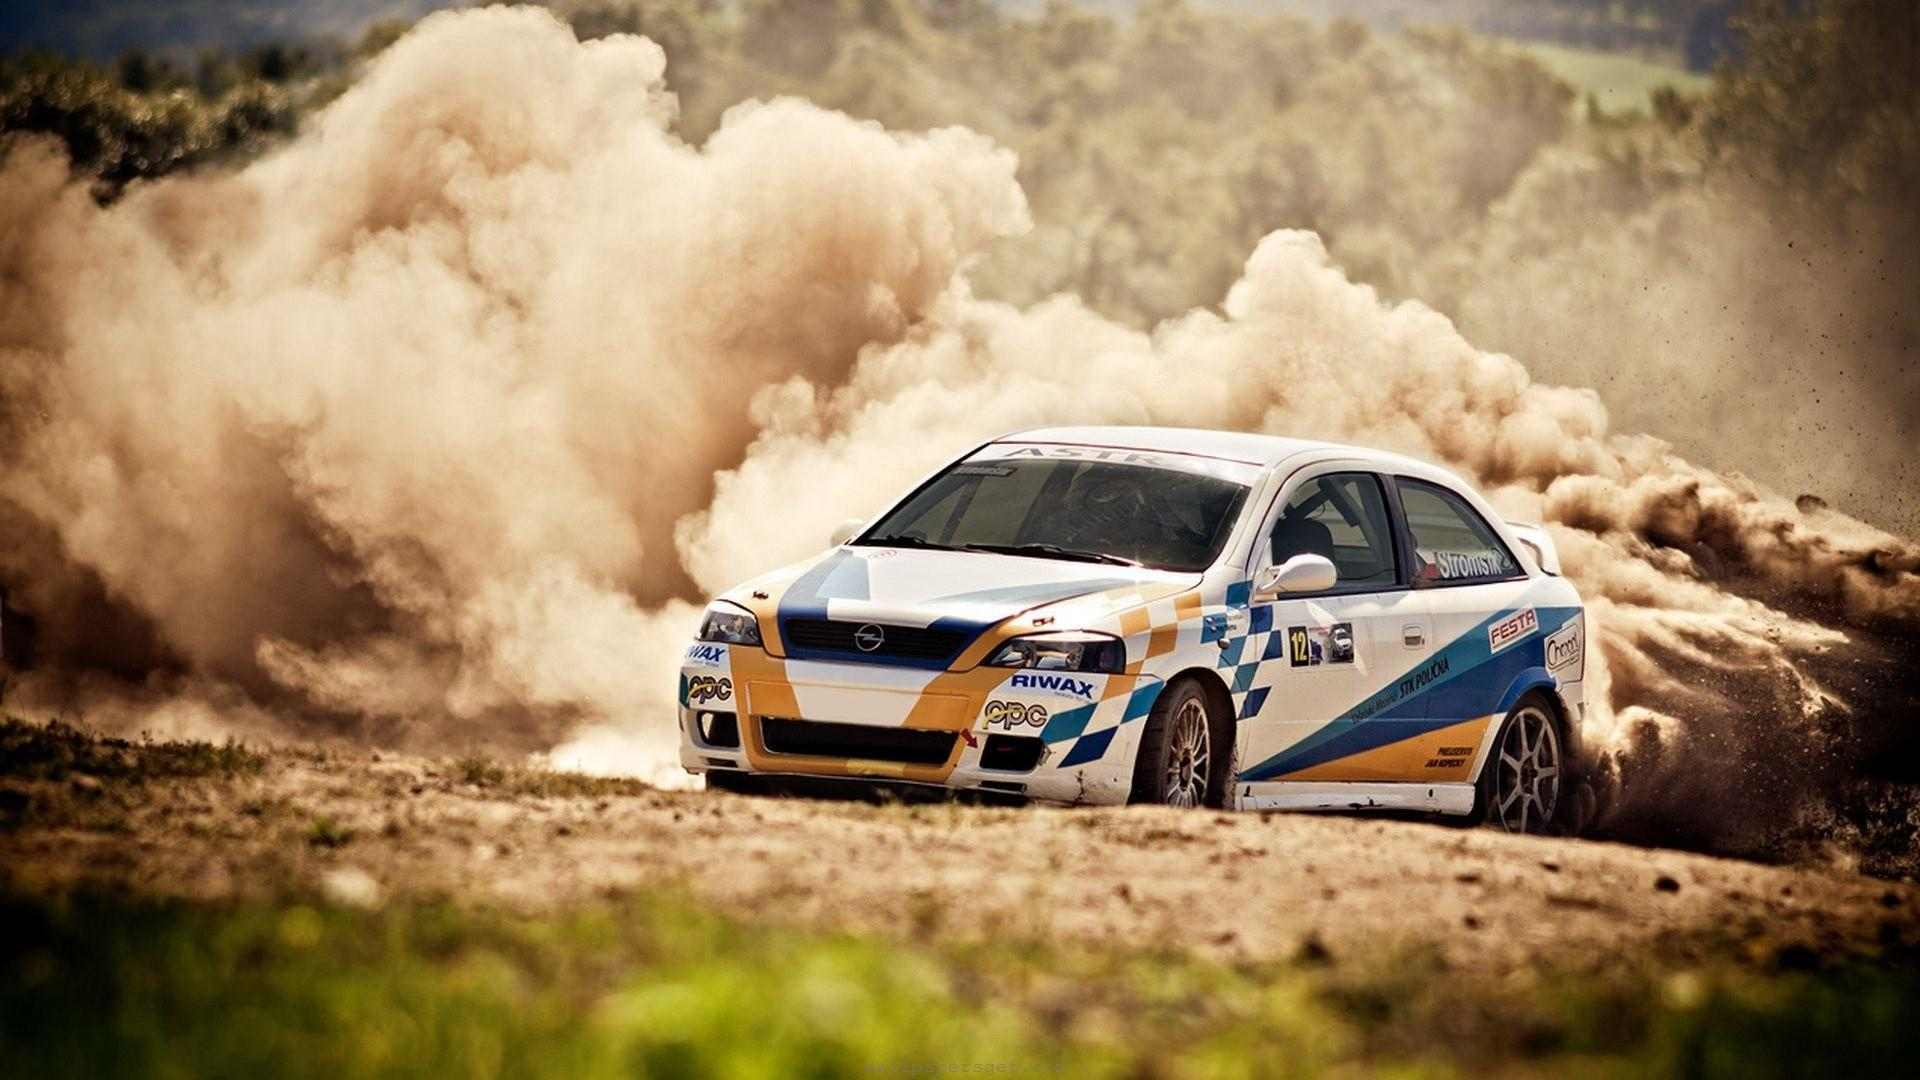 Car Wallpapers Backgrounds Hd: 17 Awesome HD Rally Car Wallpapers